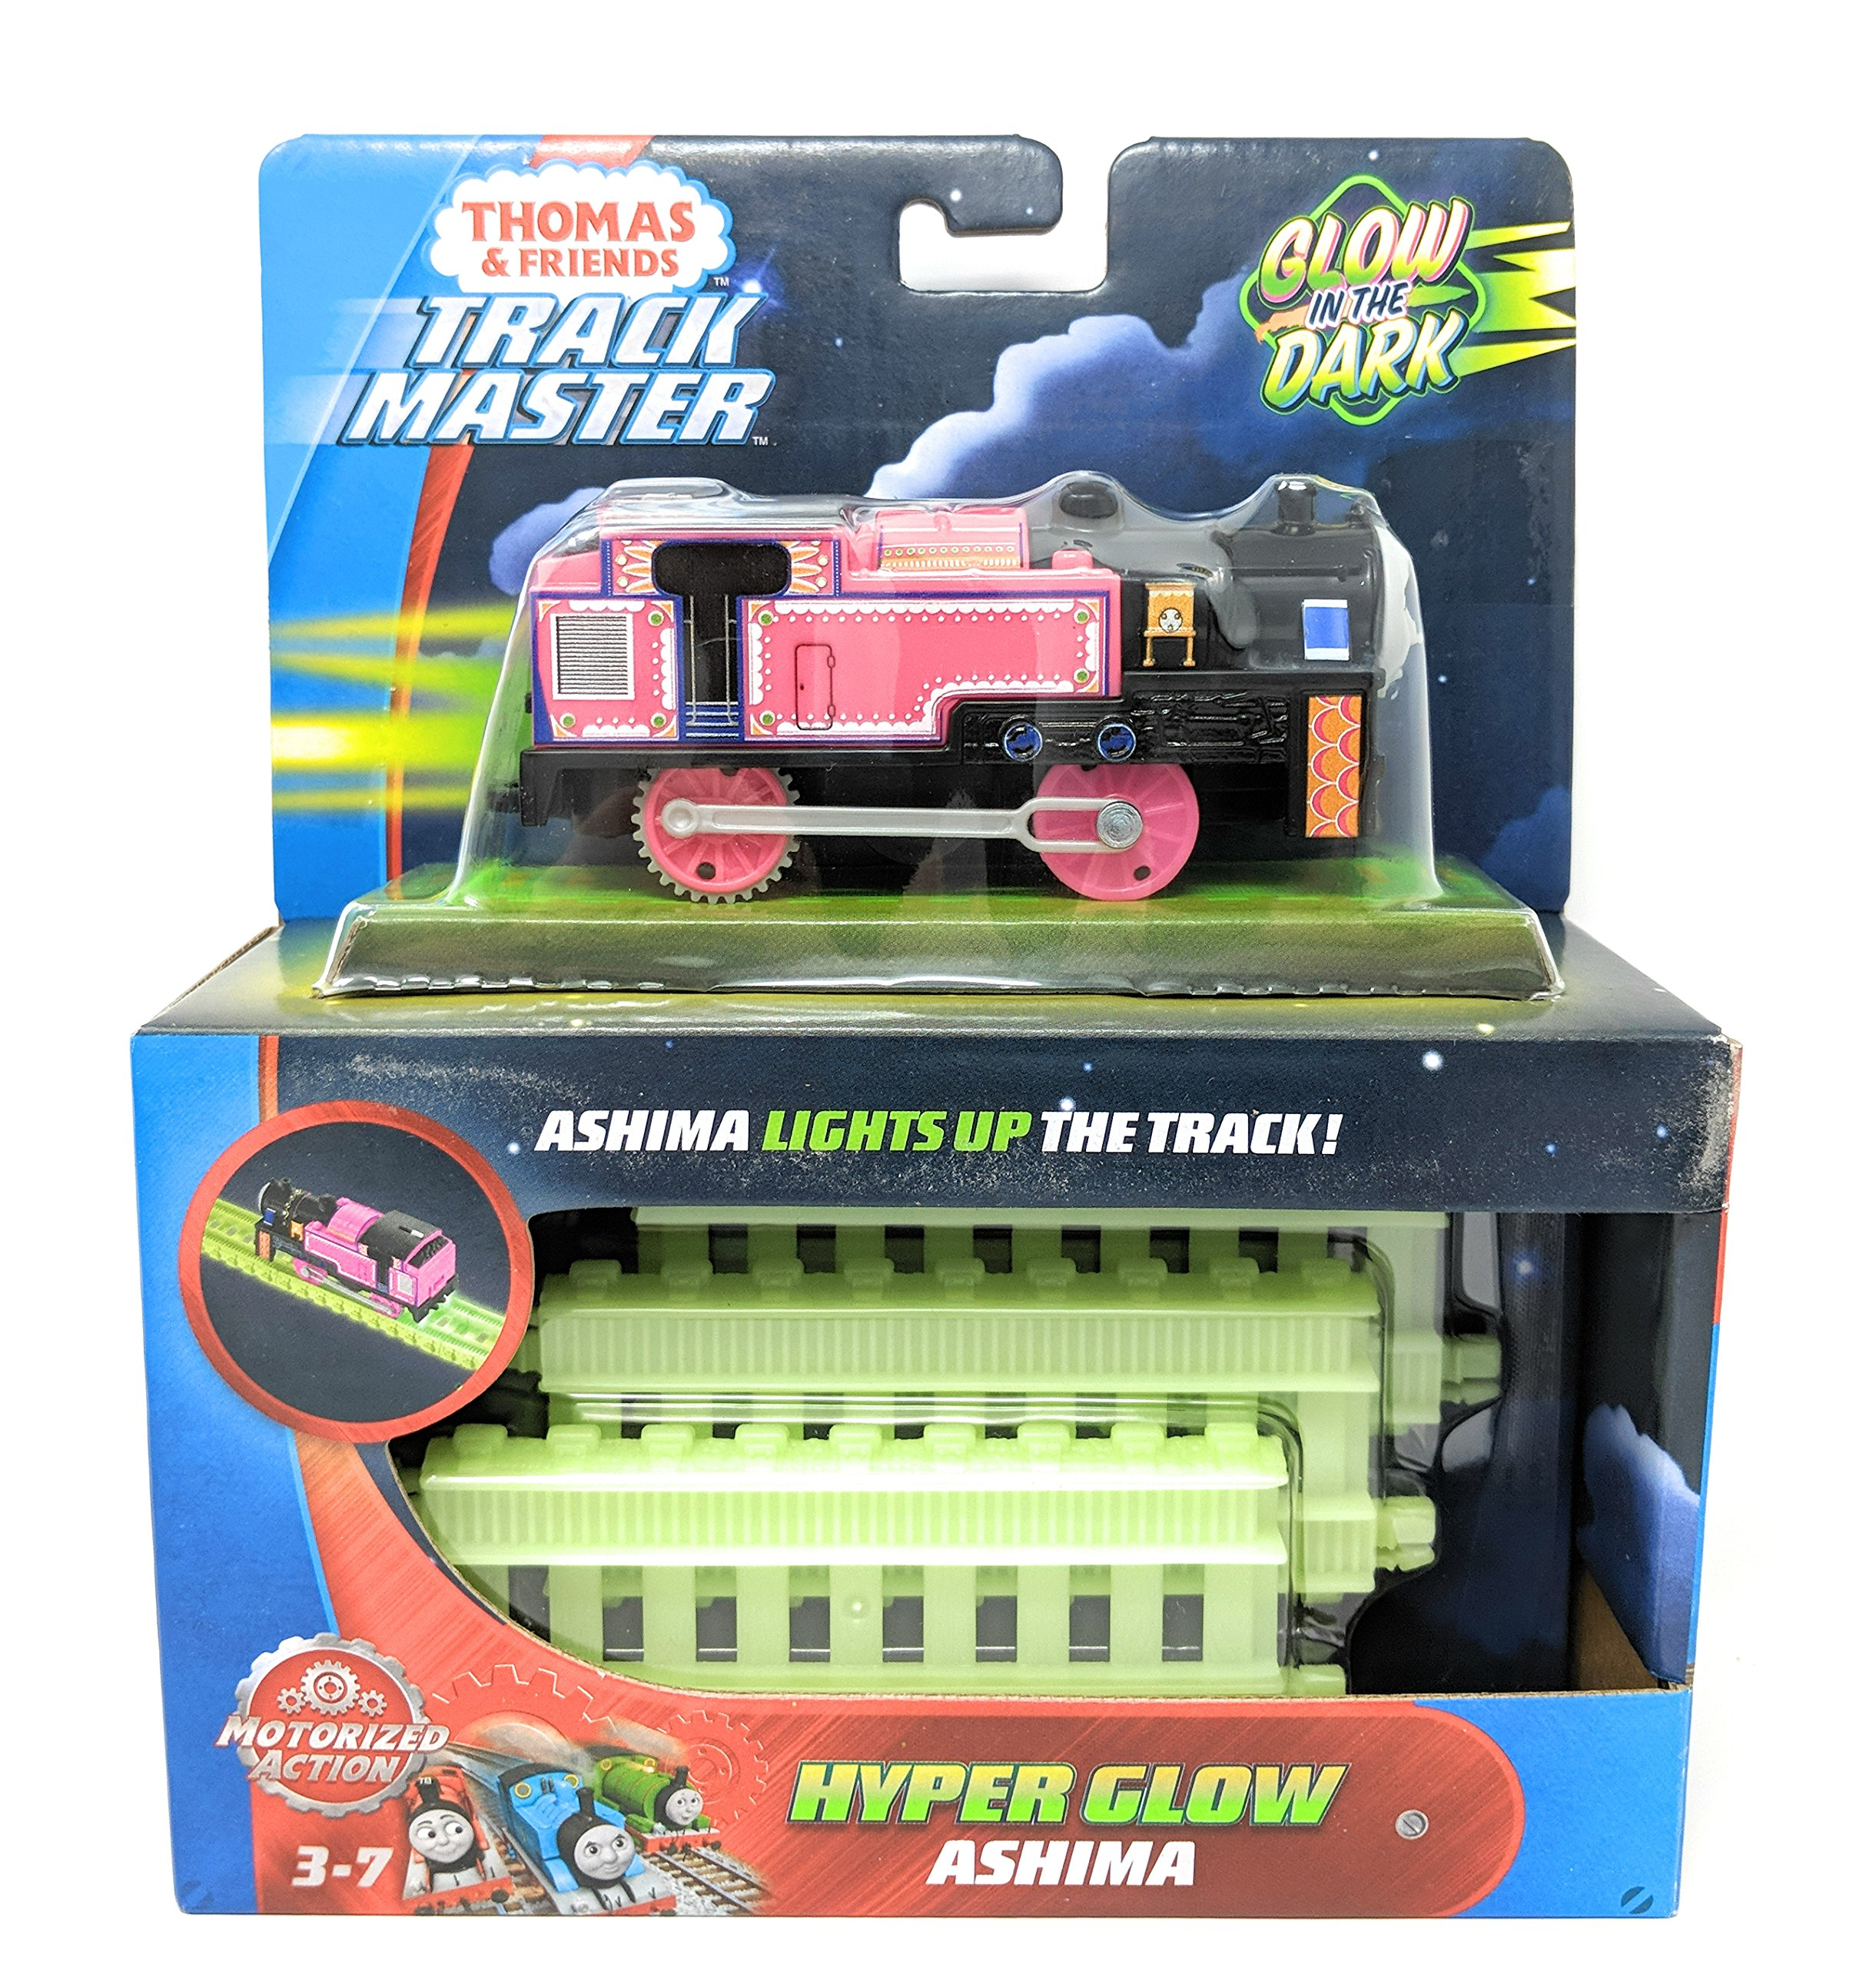 Thomas & Friends Fisher-Price TrackMaster, Motorized Hyper Glow Ashima